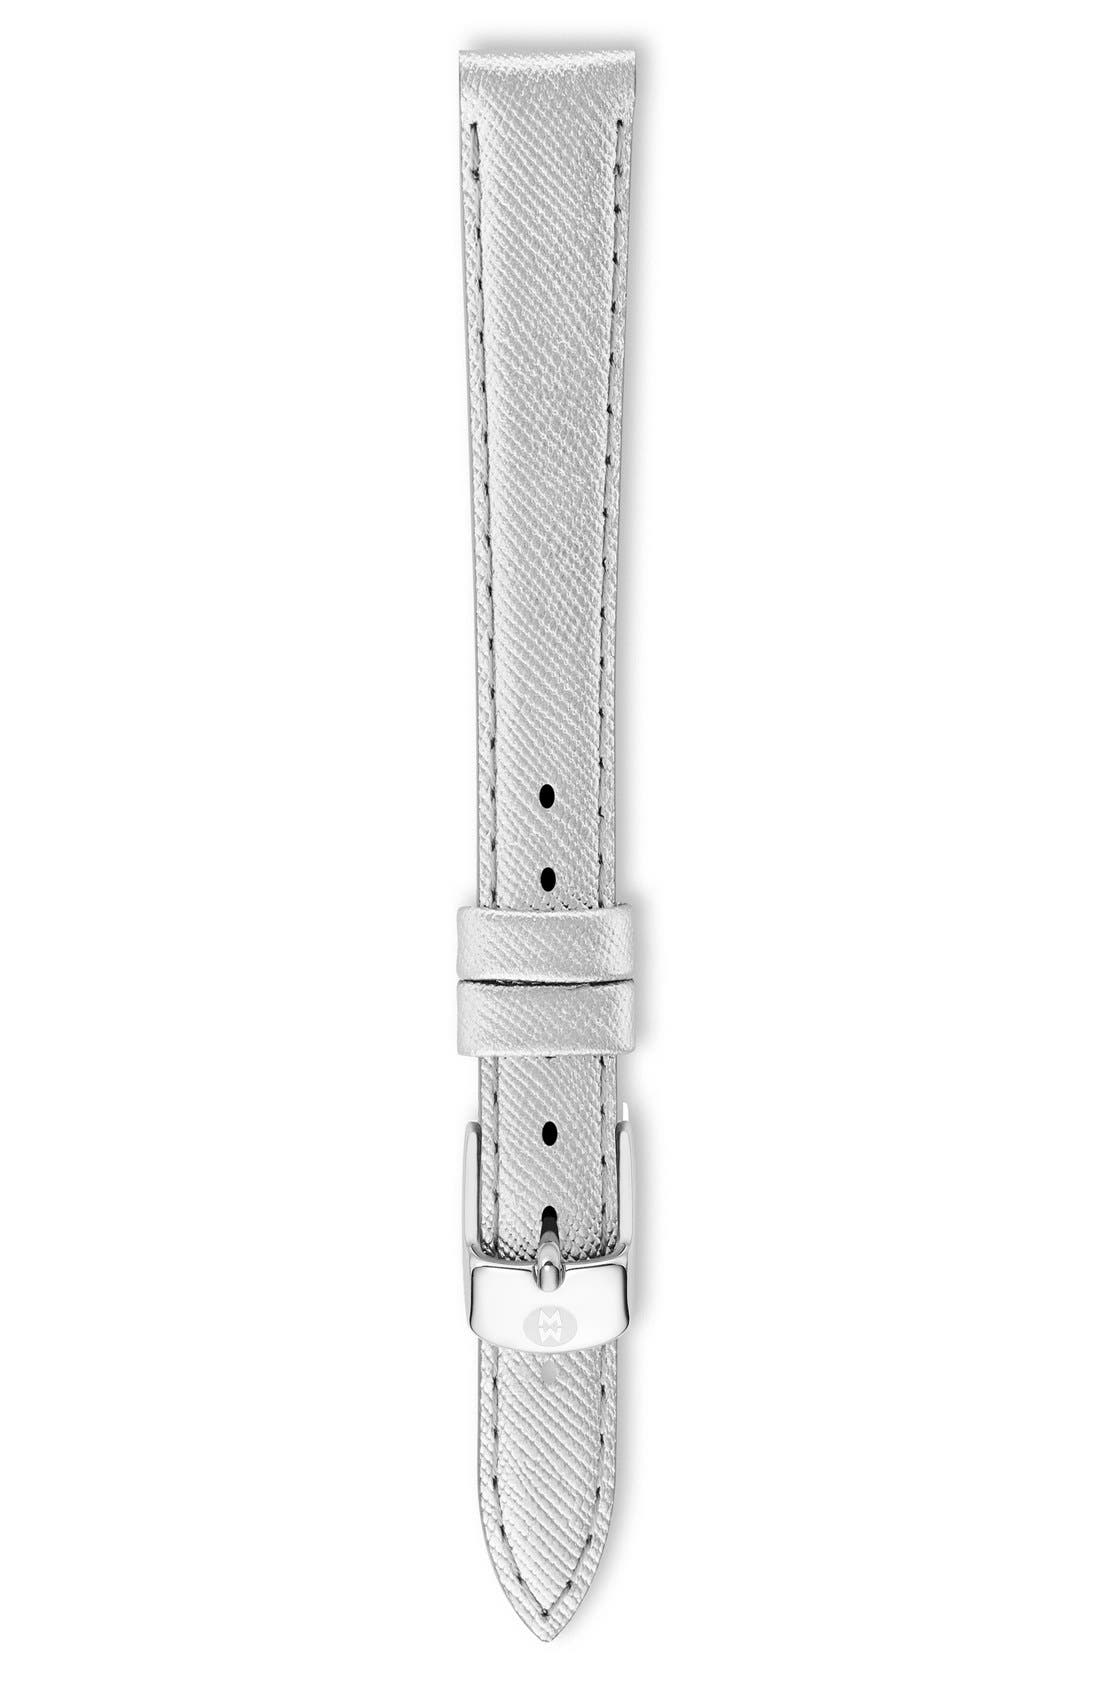 12mm Metallic Leather Watch Strap,                             Main thumbnail 1, color,                             040